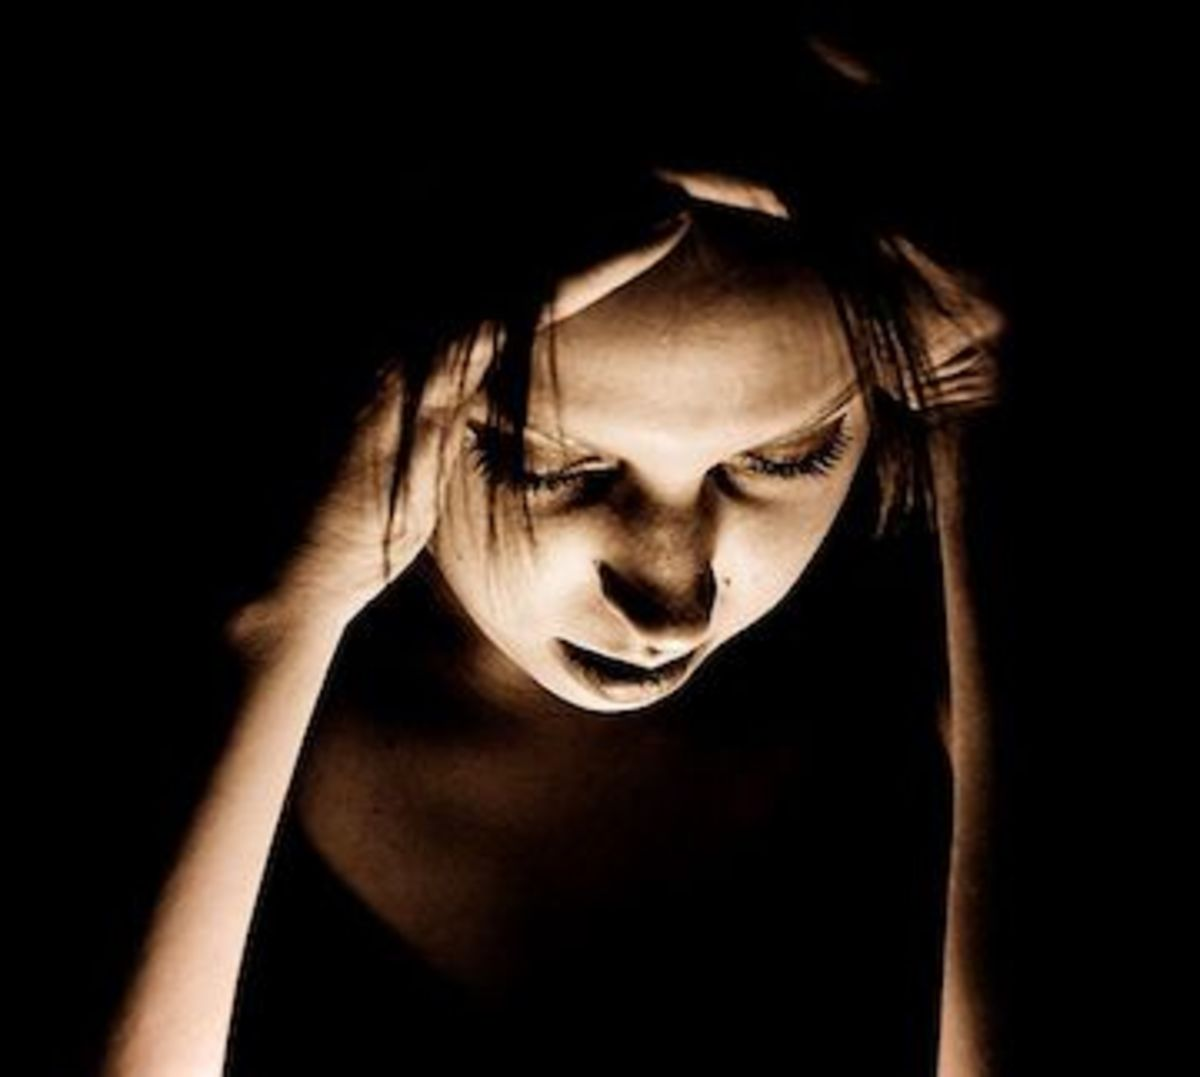 How Can I Get Rid of a Migraine Naturally Without Drugs?